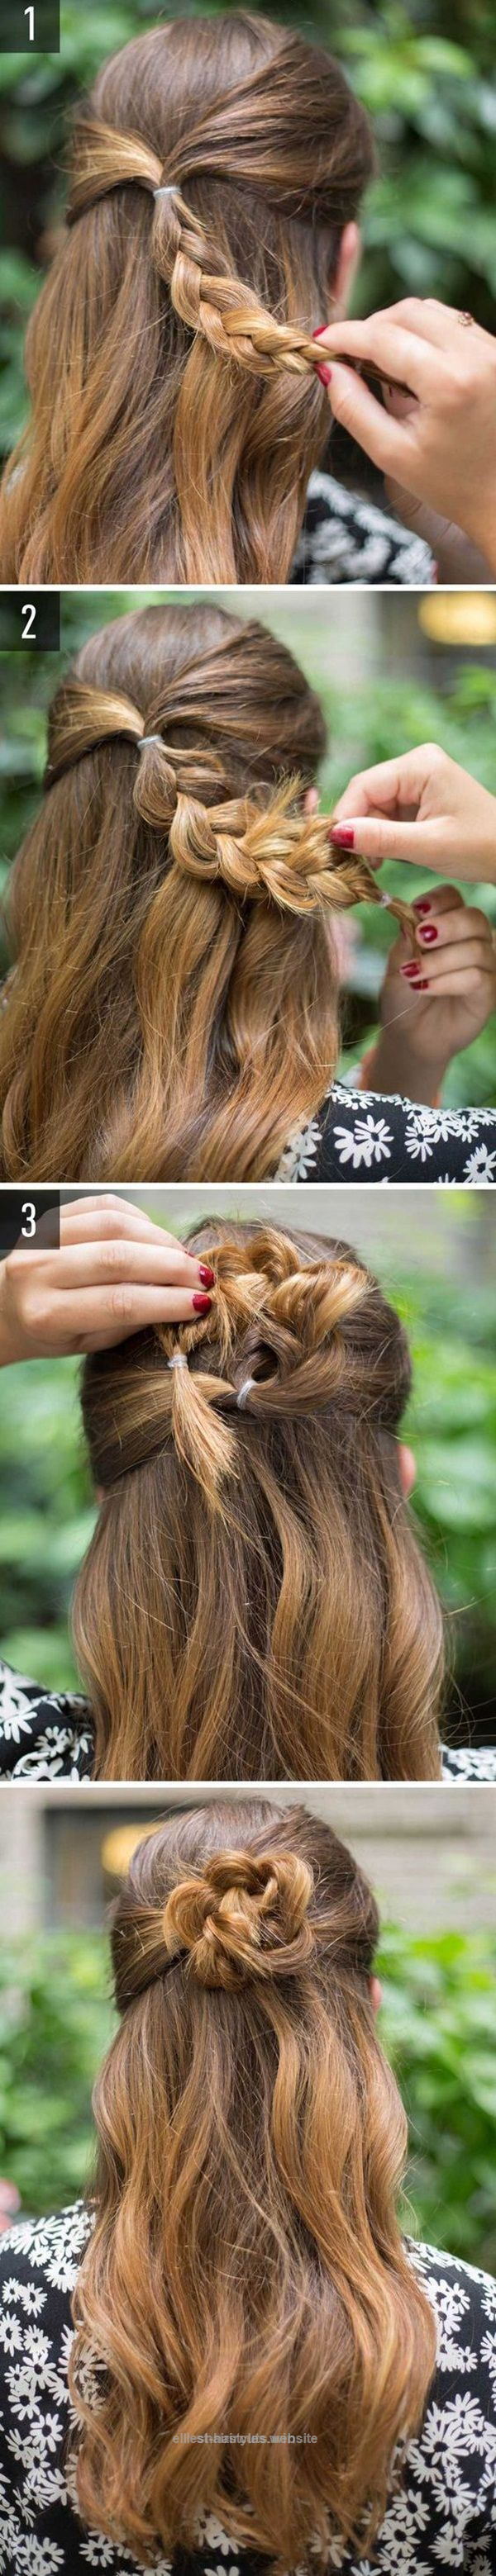 Check out this easy hairstyles for schools to try in quick